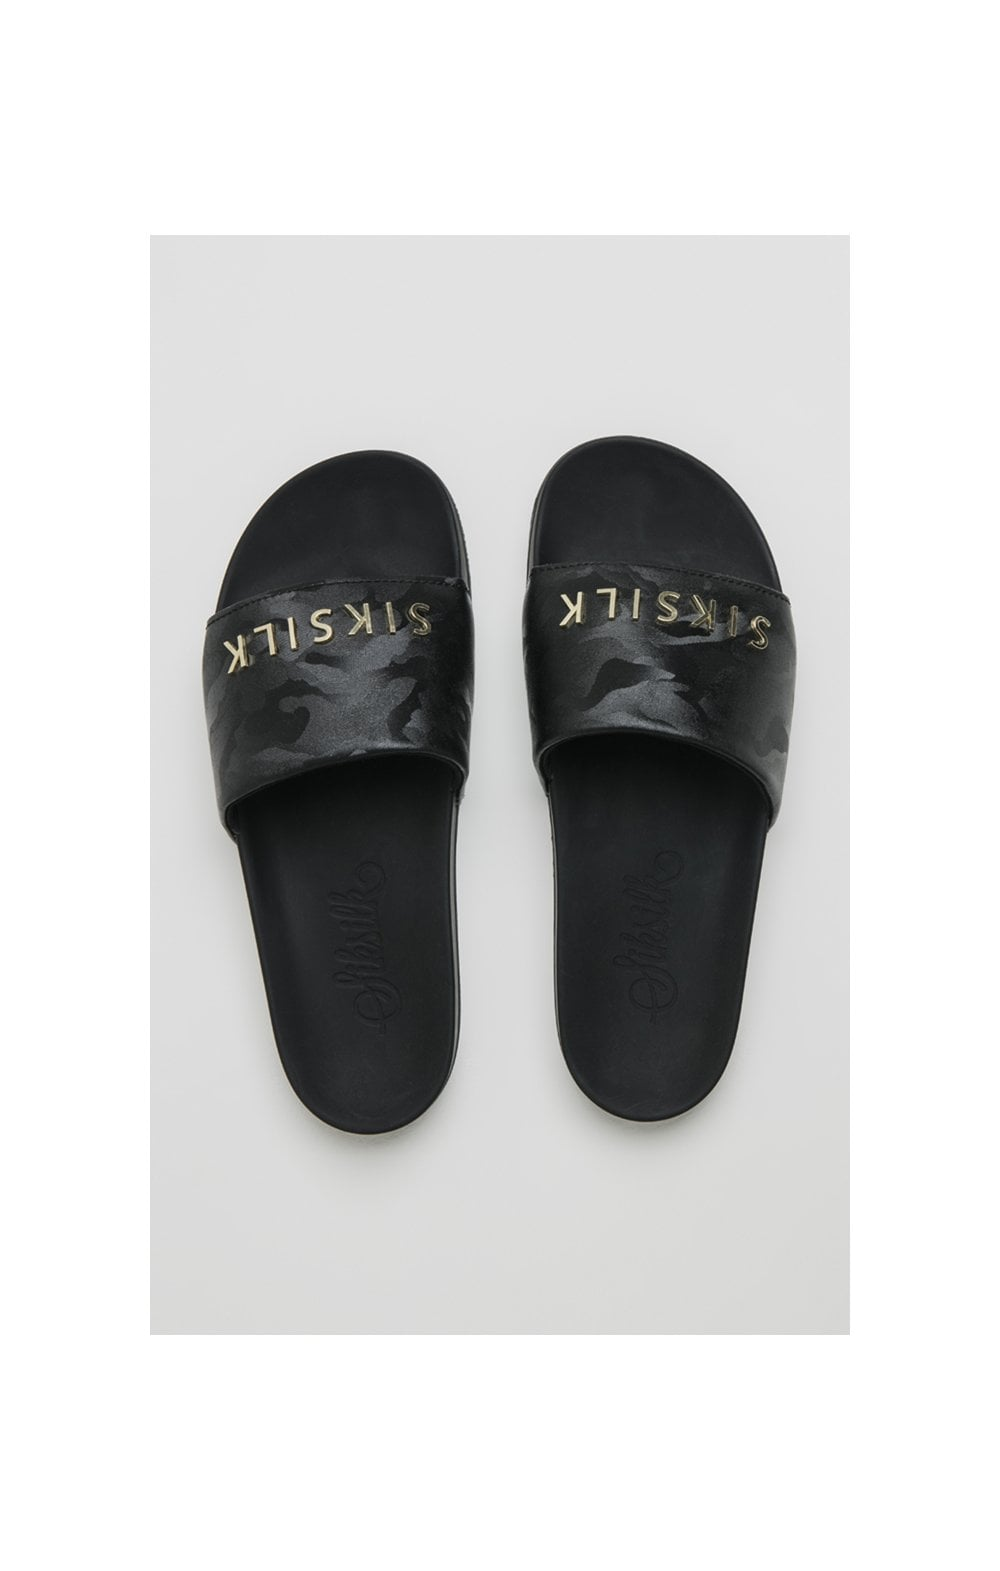 SikSilk Alpha Camo Slides - Black (2)